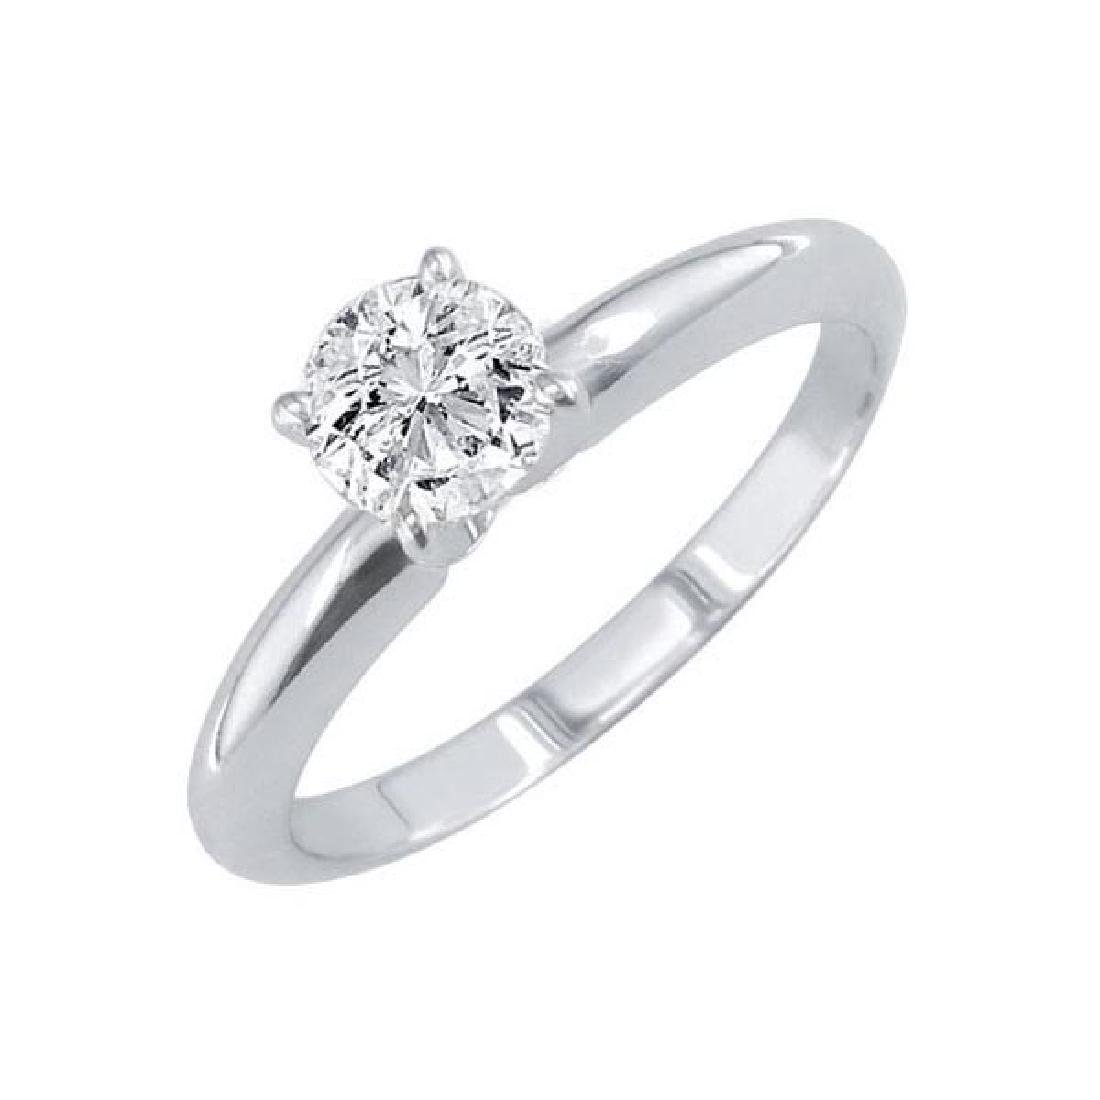 Certified 1.08 CTW Round Diamond Solitaire 14k Ring D/S